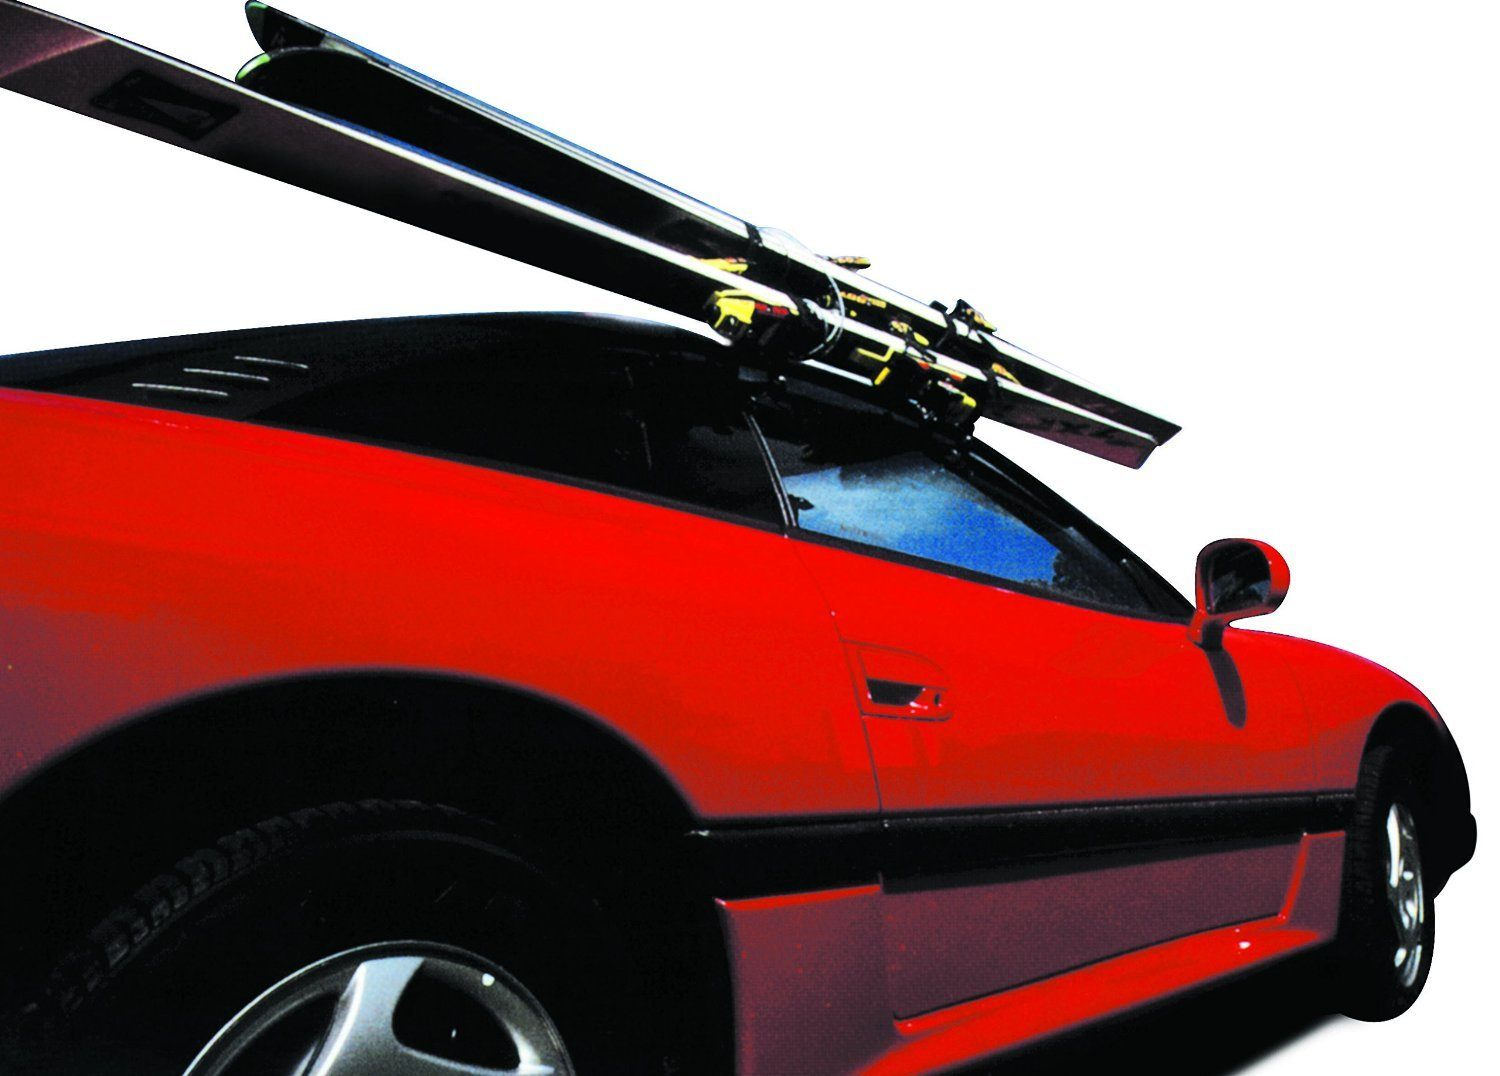 window mount ski rack on car